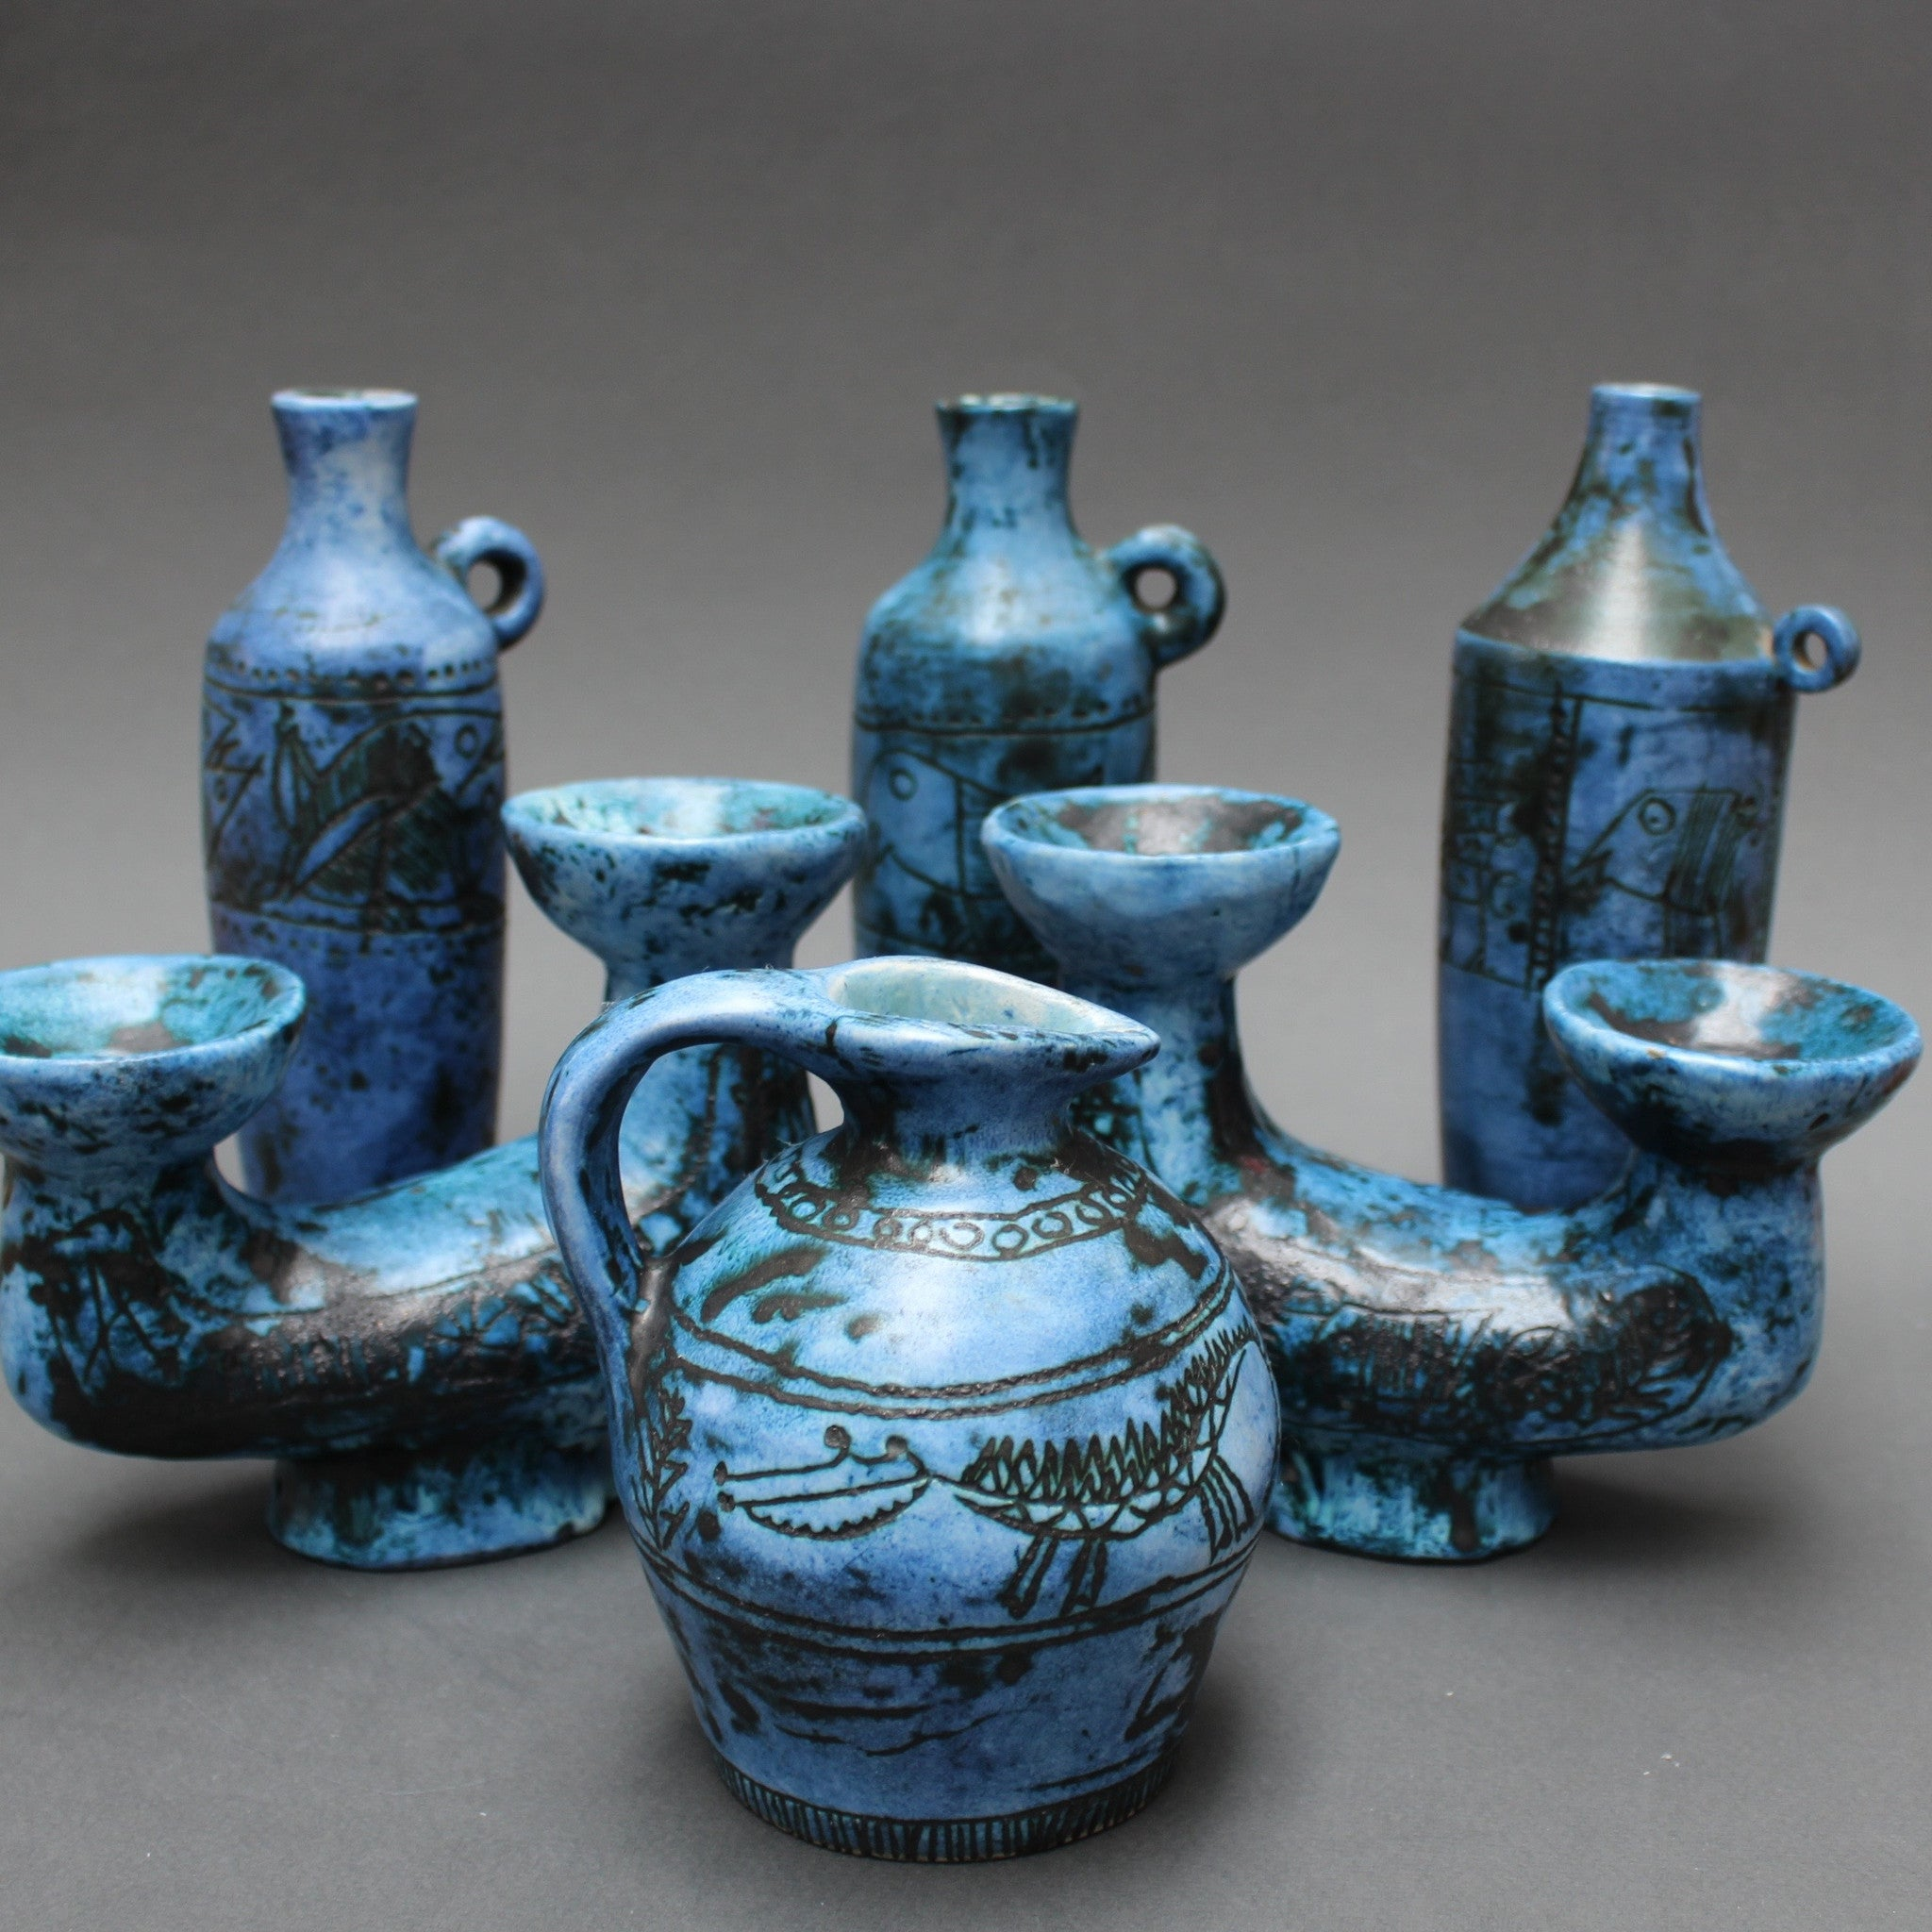 Blue Vase by Jacques Blin (c. 1950s)